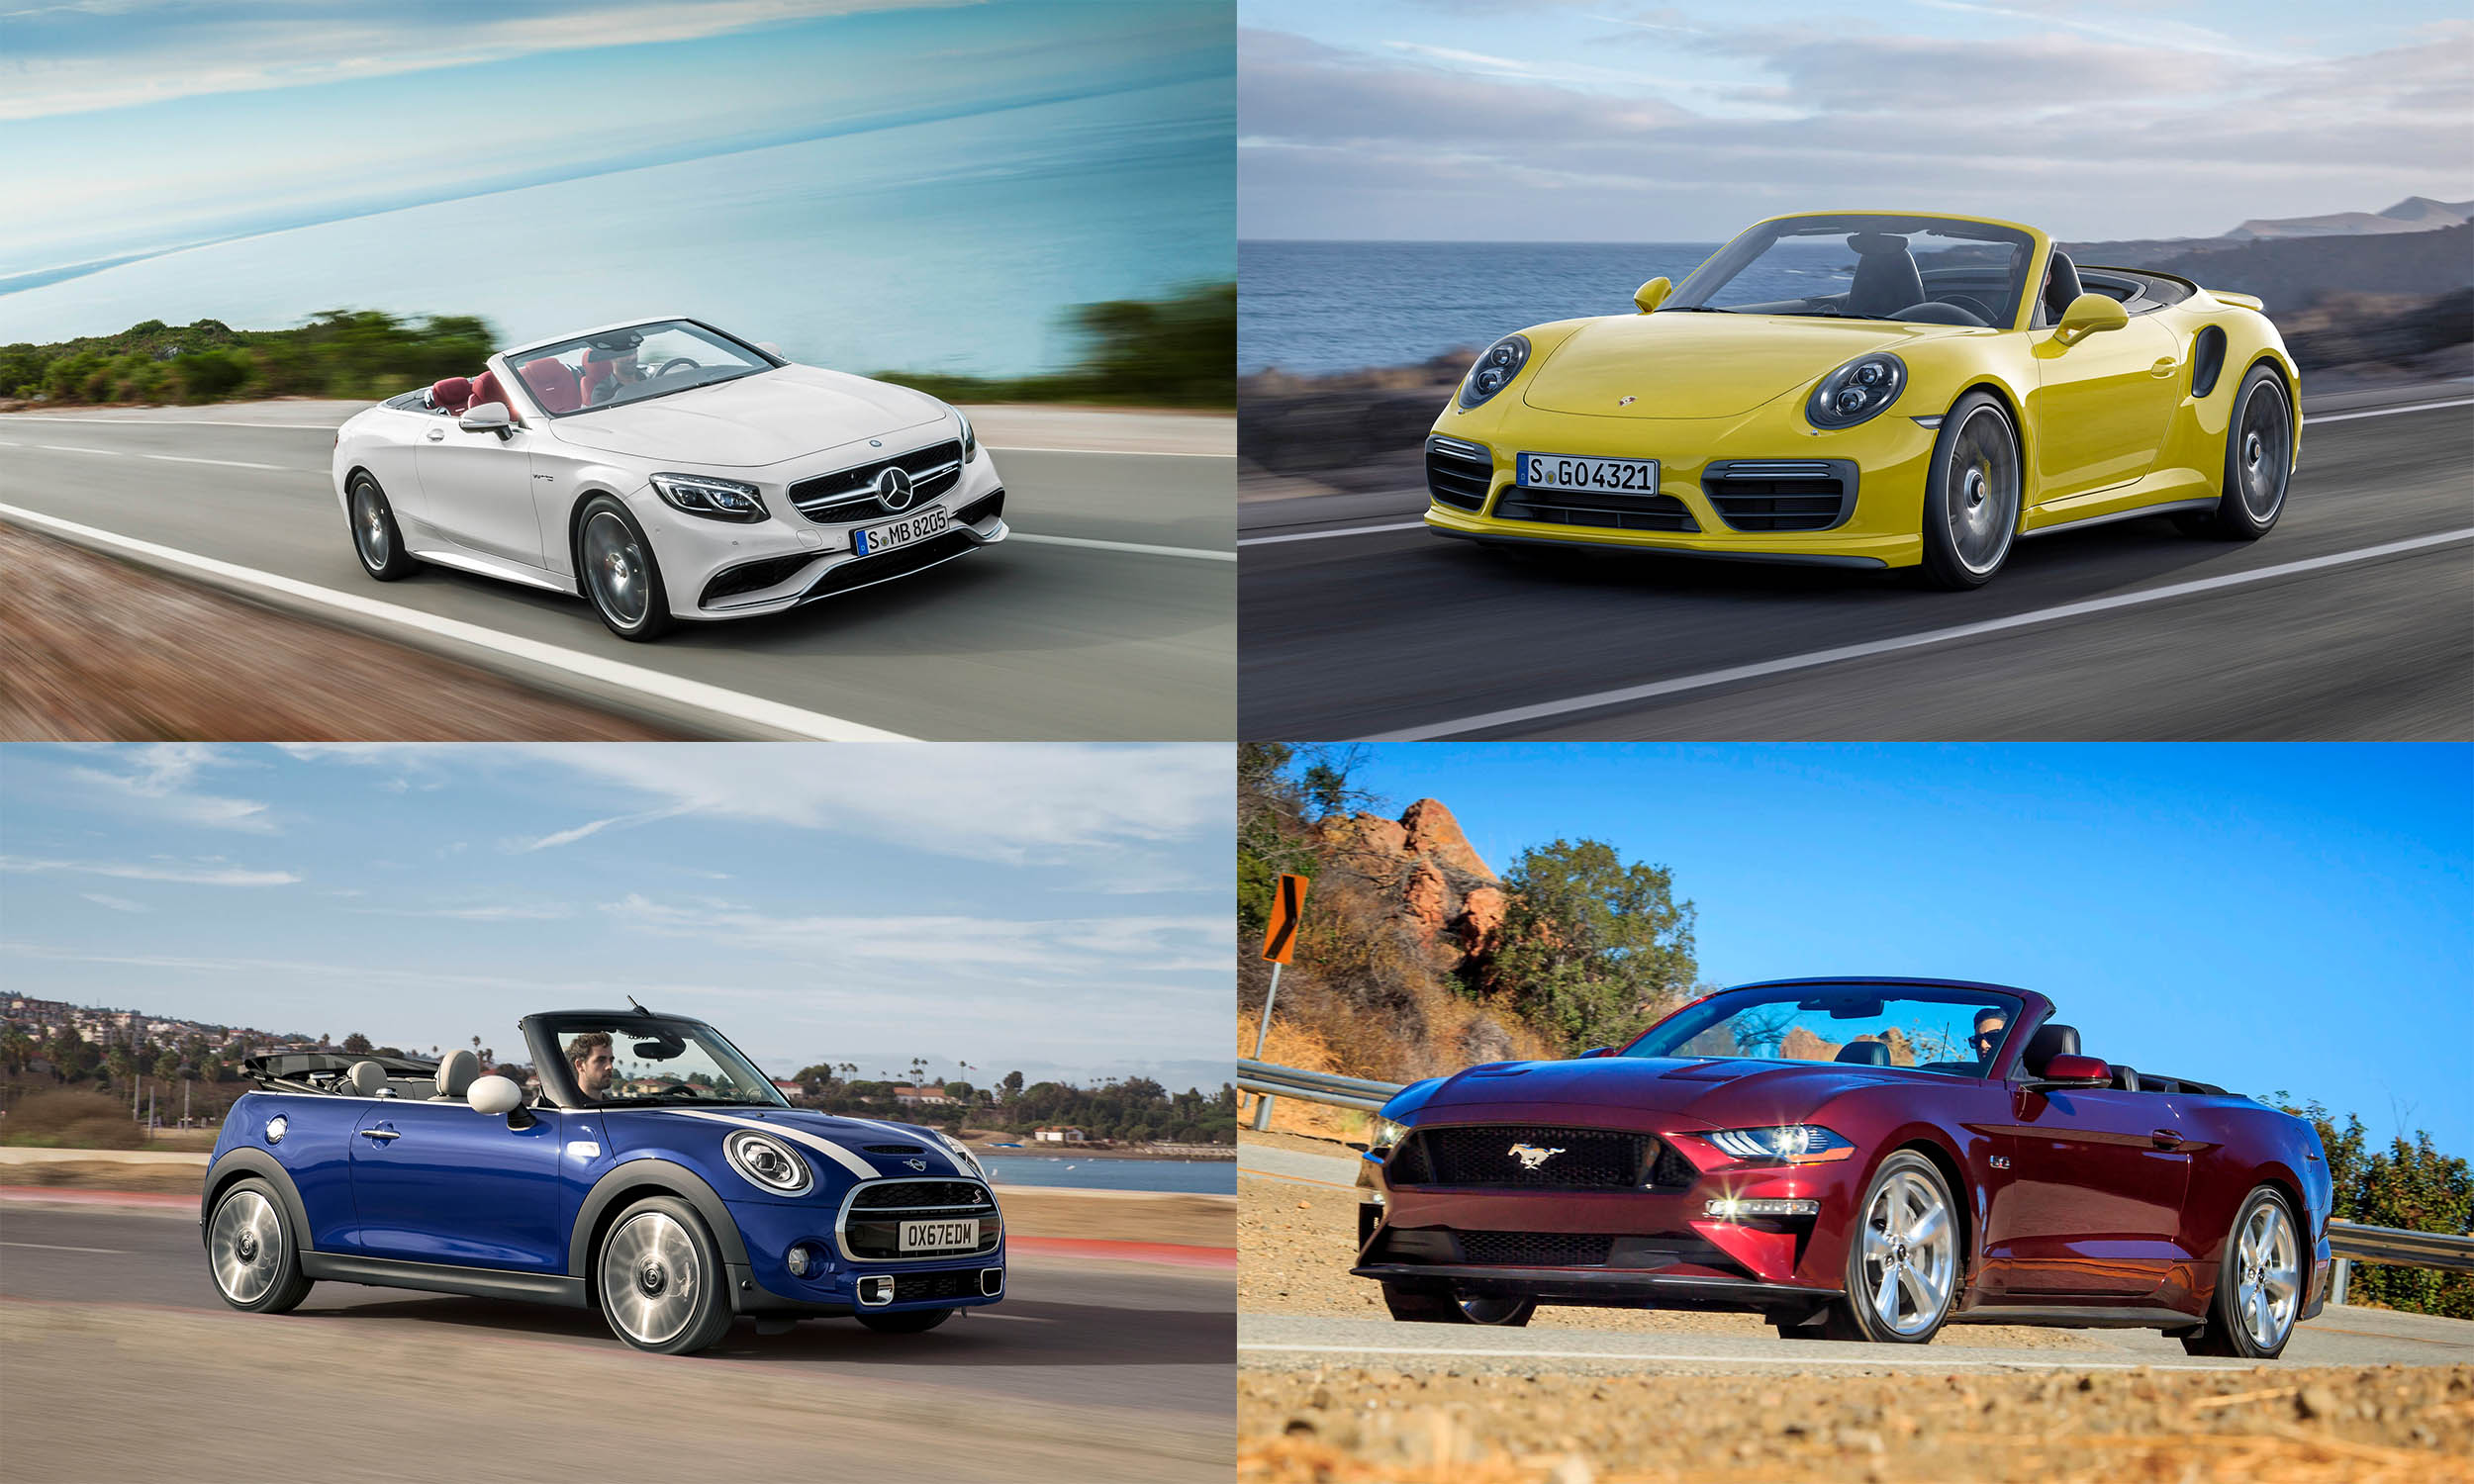 © Mercedes-Benz USA, © BMW USA, © Porsche Cars North America, © Ford Motor Company